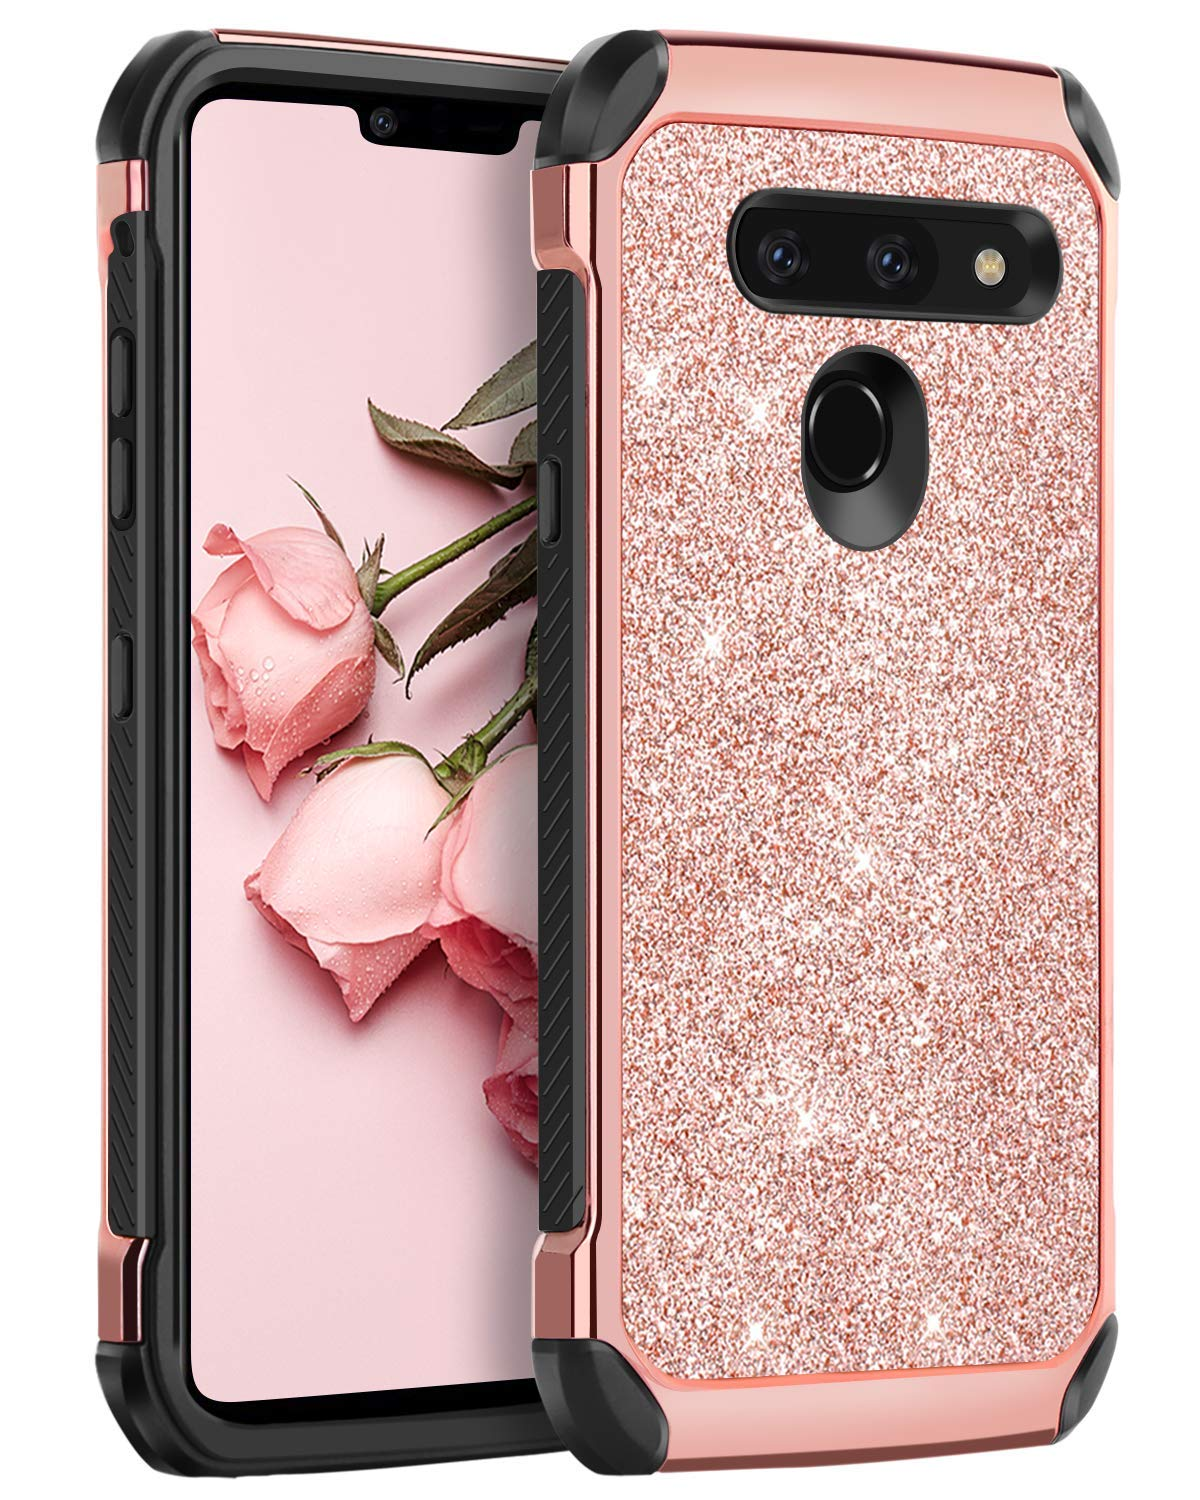 BENTOBEN Case for LG G8 ThinQ/LG G8,Shockproof Glitter Sparkly Bling Girl Women 2 in 1 Shiny Faux Leather Hard PC Soft TPU Bumper Protective Phone Cover for LG G8 Thin Q/LG G8 2019 Release, Rose Gold